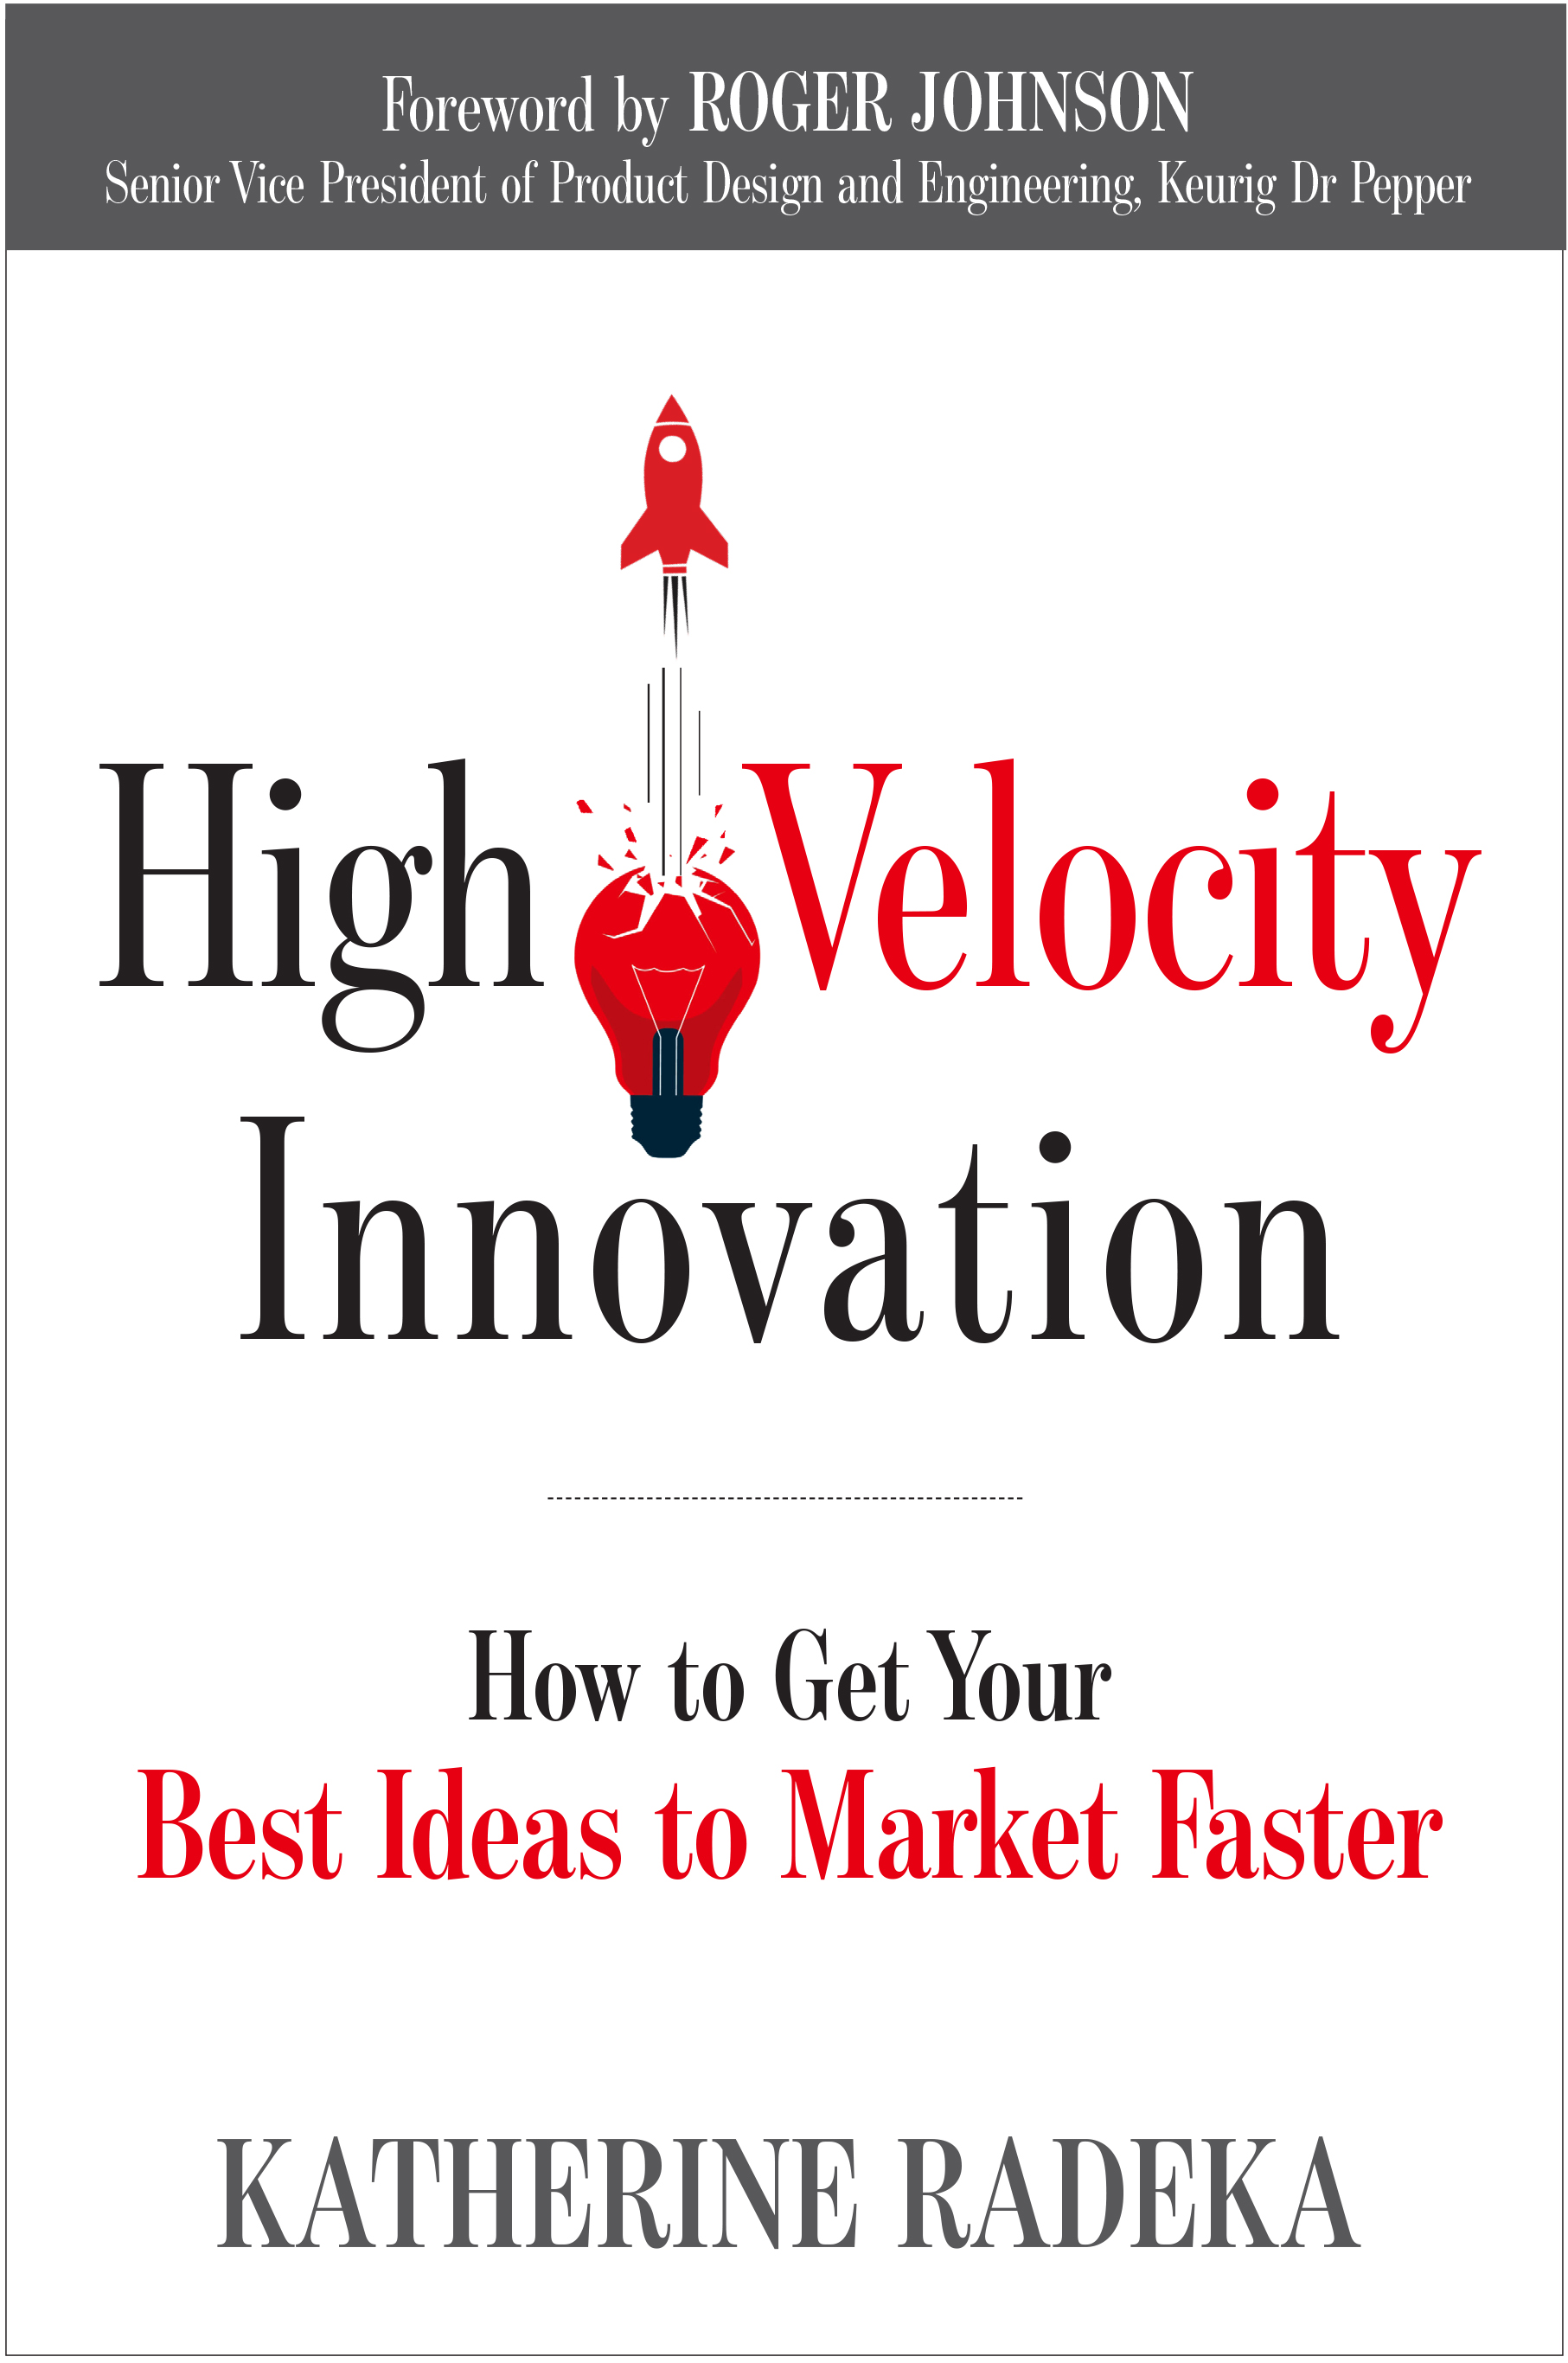 High Velocity Innovation: How to Get Your Best Ideas to Market Faster